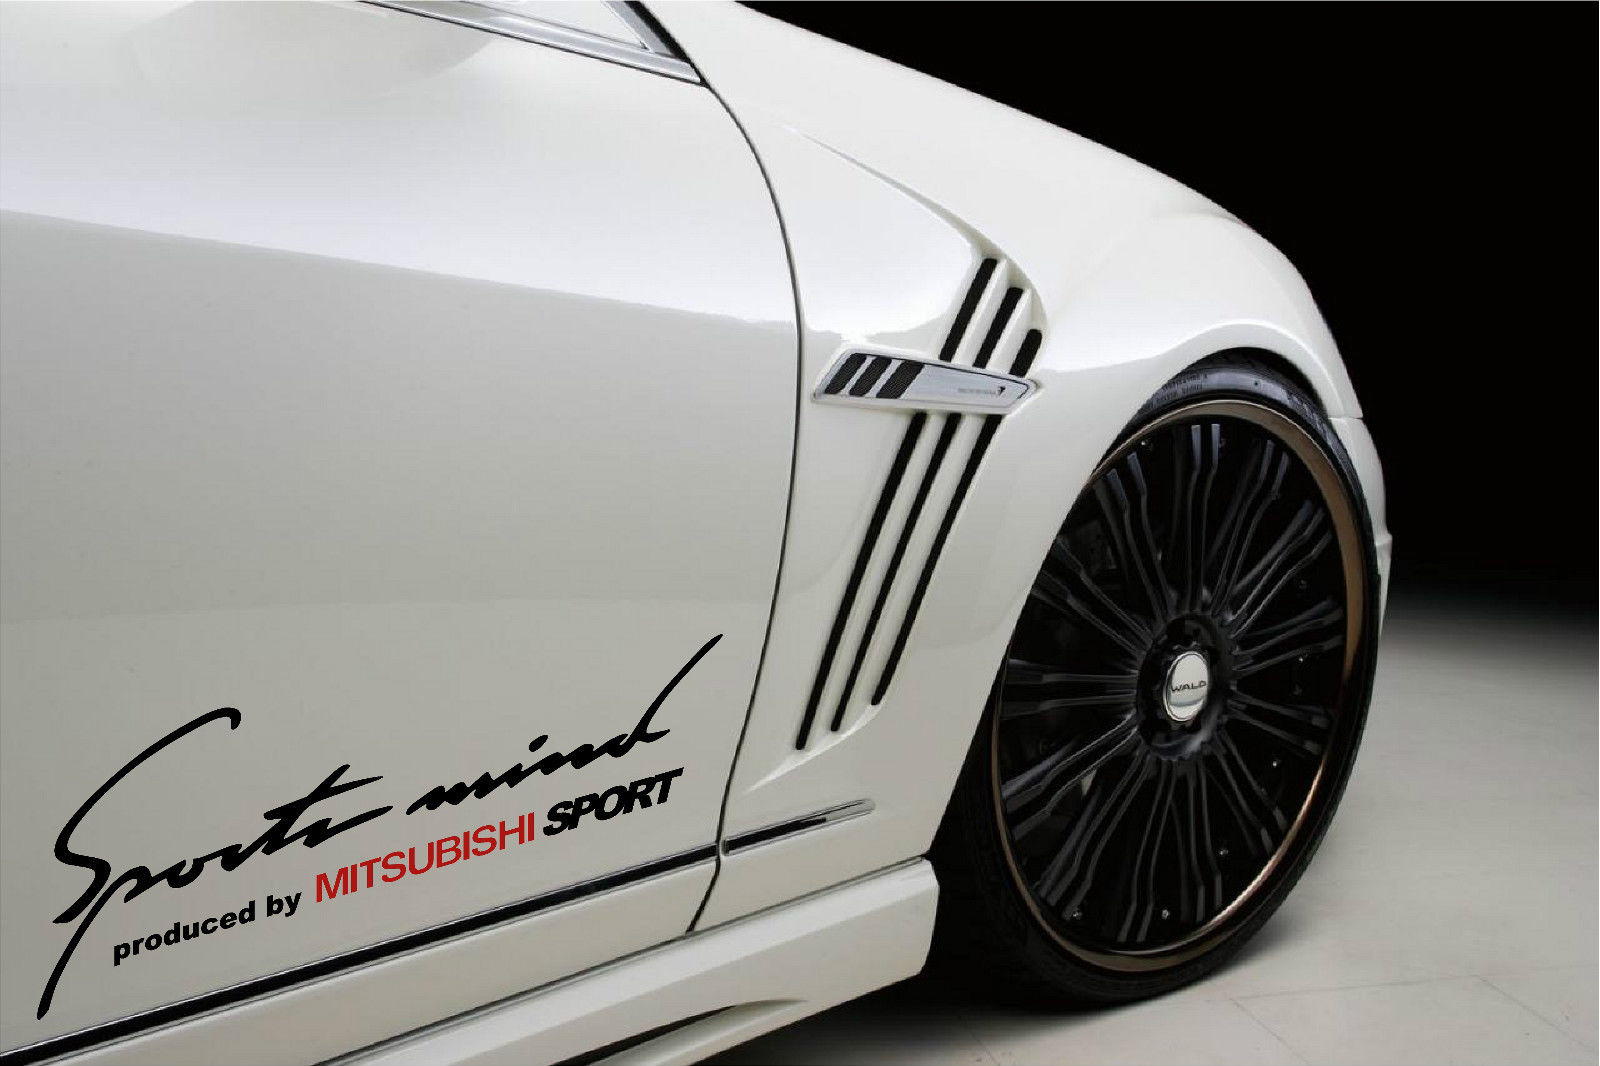 Product Sports Mind Produced By MITSUBISHI SPORT Decal Sticker - Sport decal stickers for cars